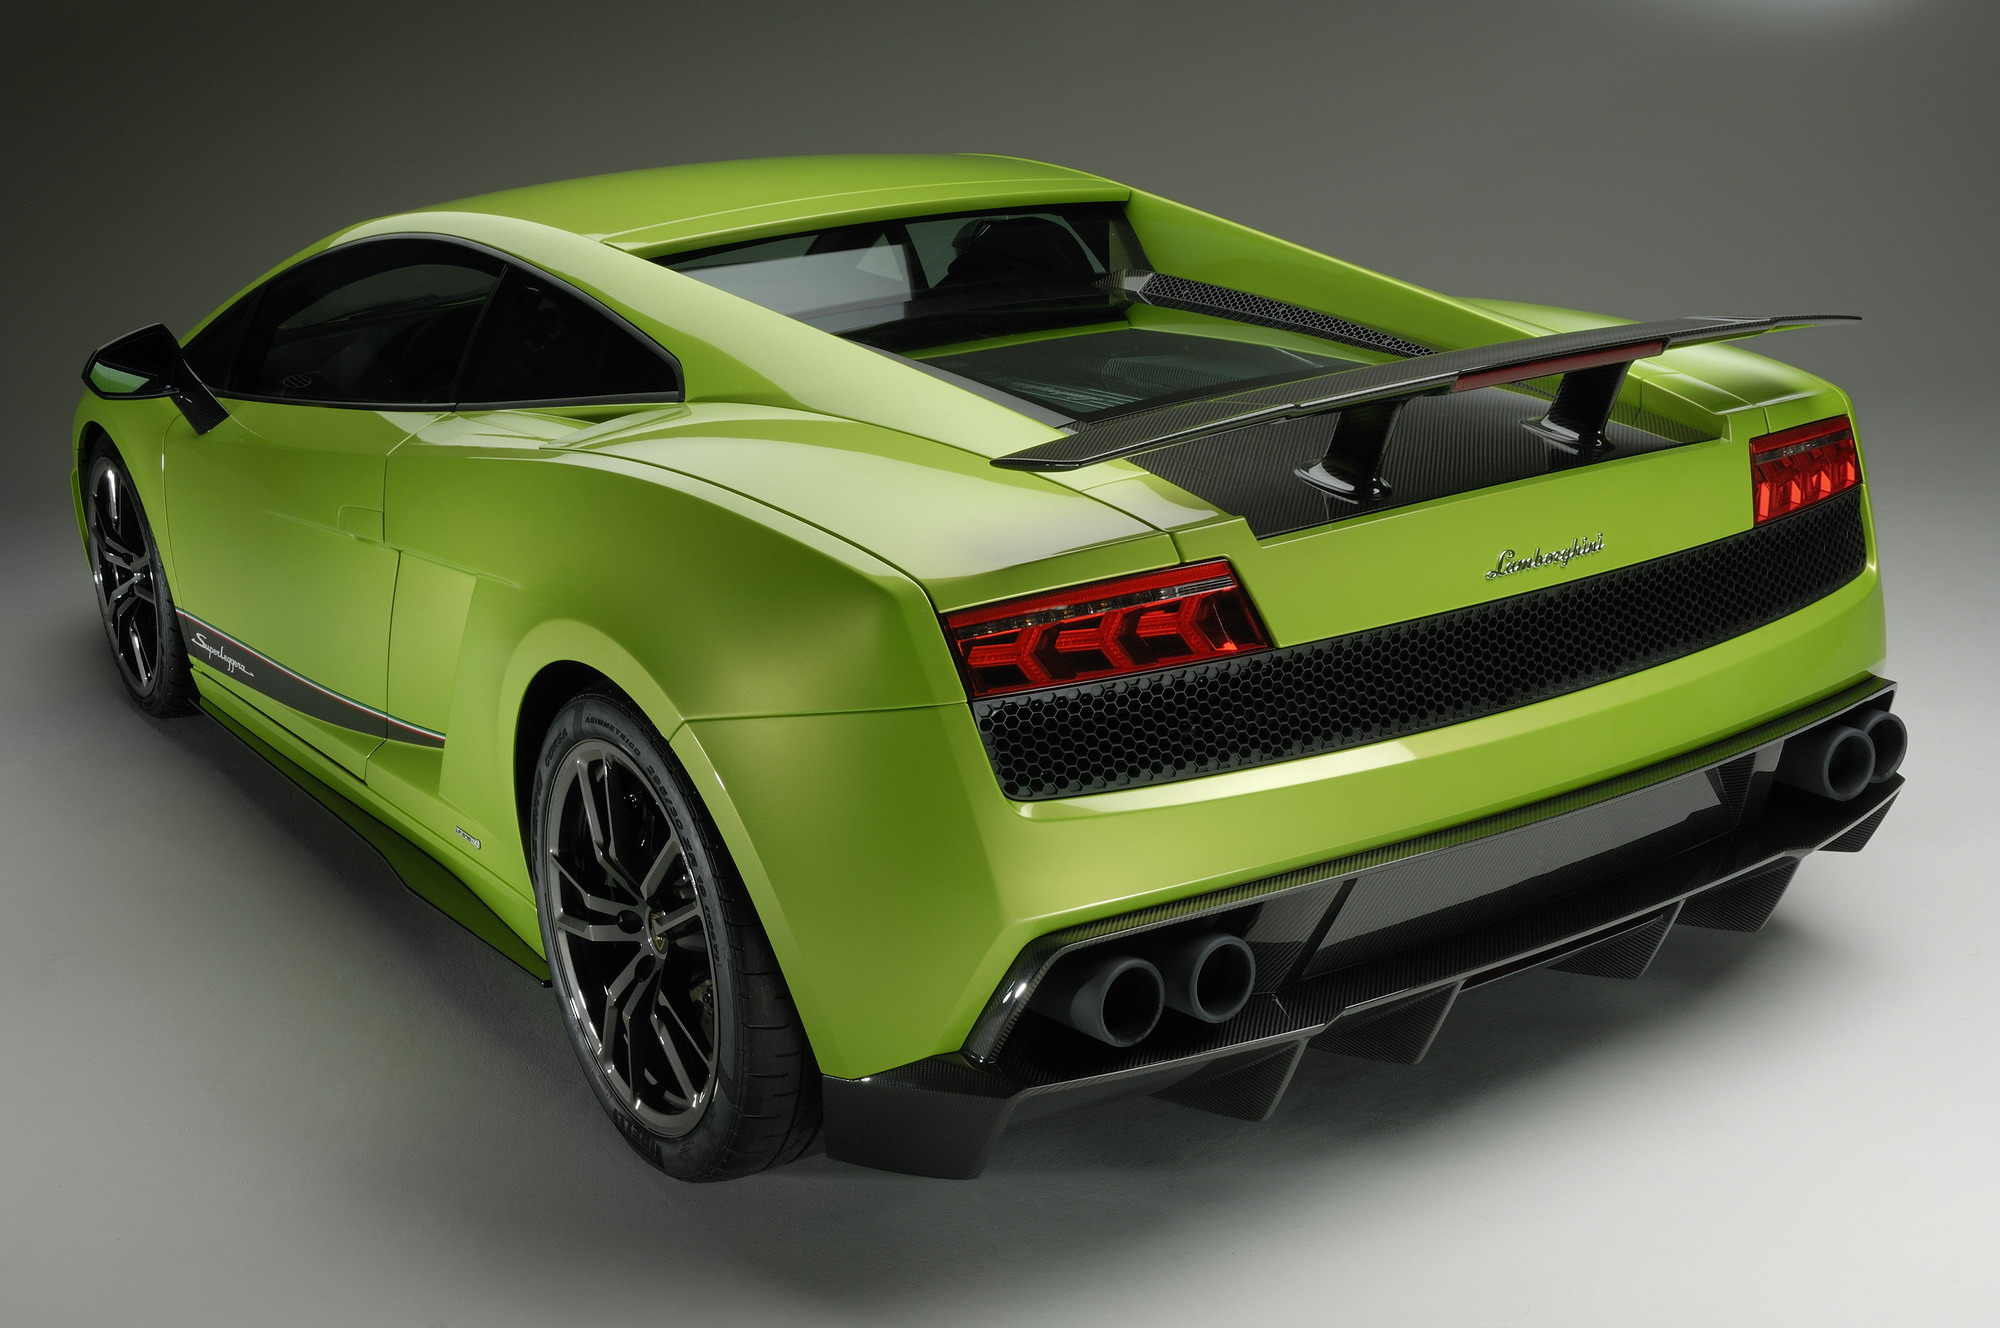 2011 2012 Lamborghini Gallardo Lp 570 4 Superleggera Top Speed